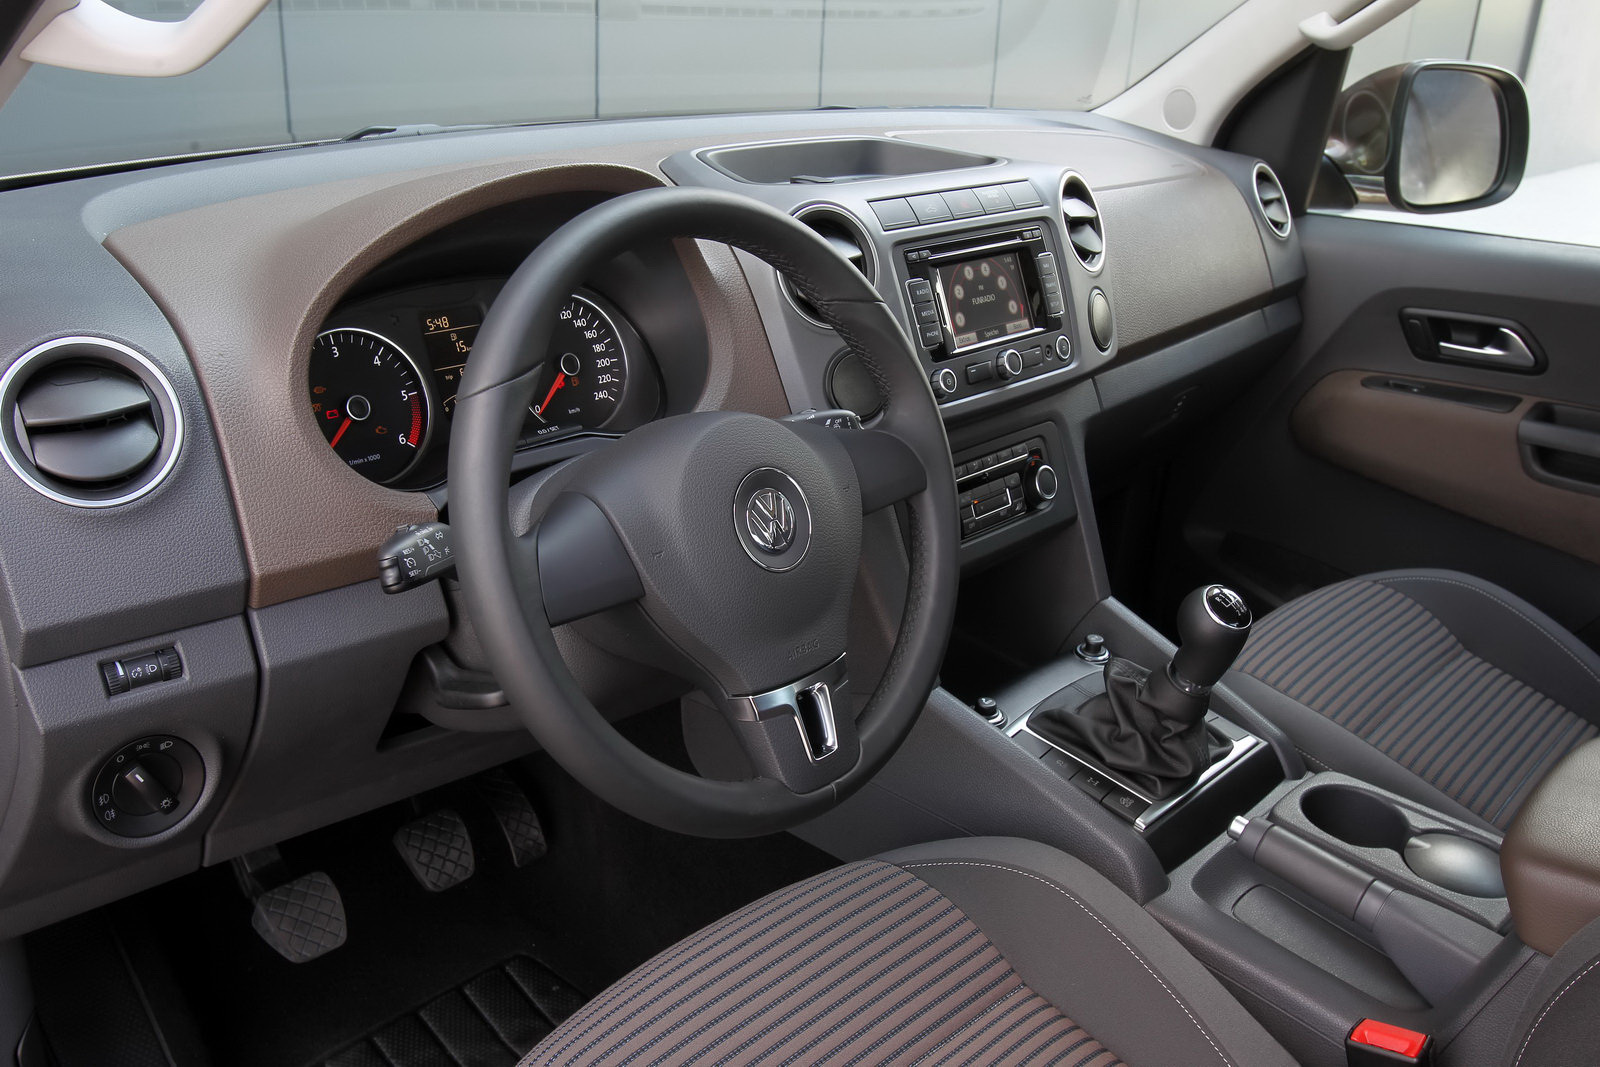 2011 Volkswagen Amarok Highline 2 2011 Volkswagen Amarok Highline – A Review